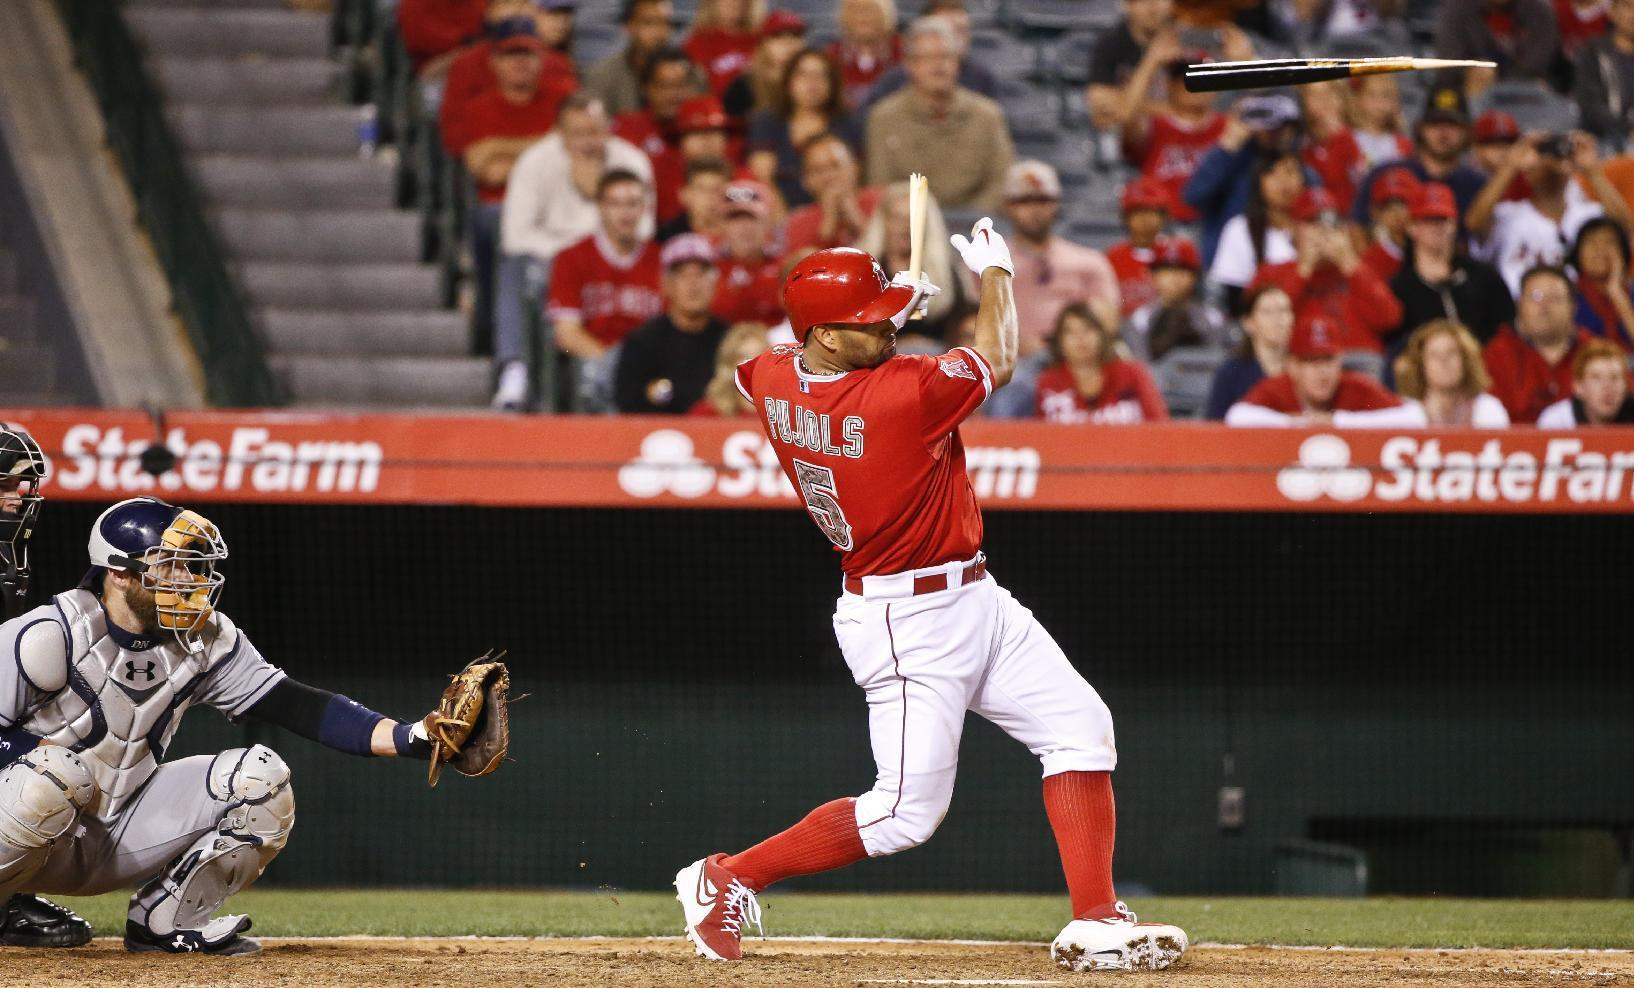 Pujols' RBI single in 9th gives Angels 4-3 win over Padres